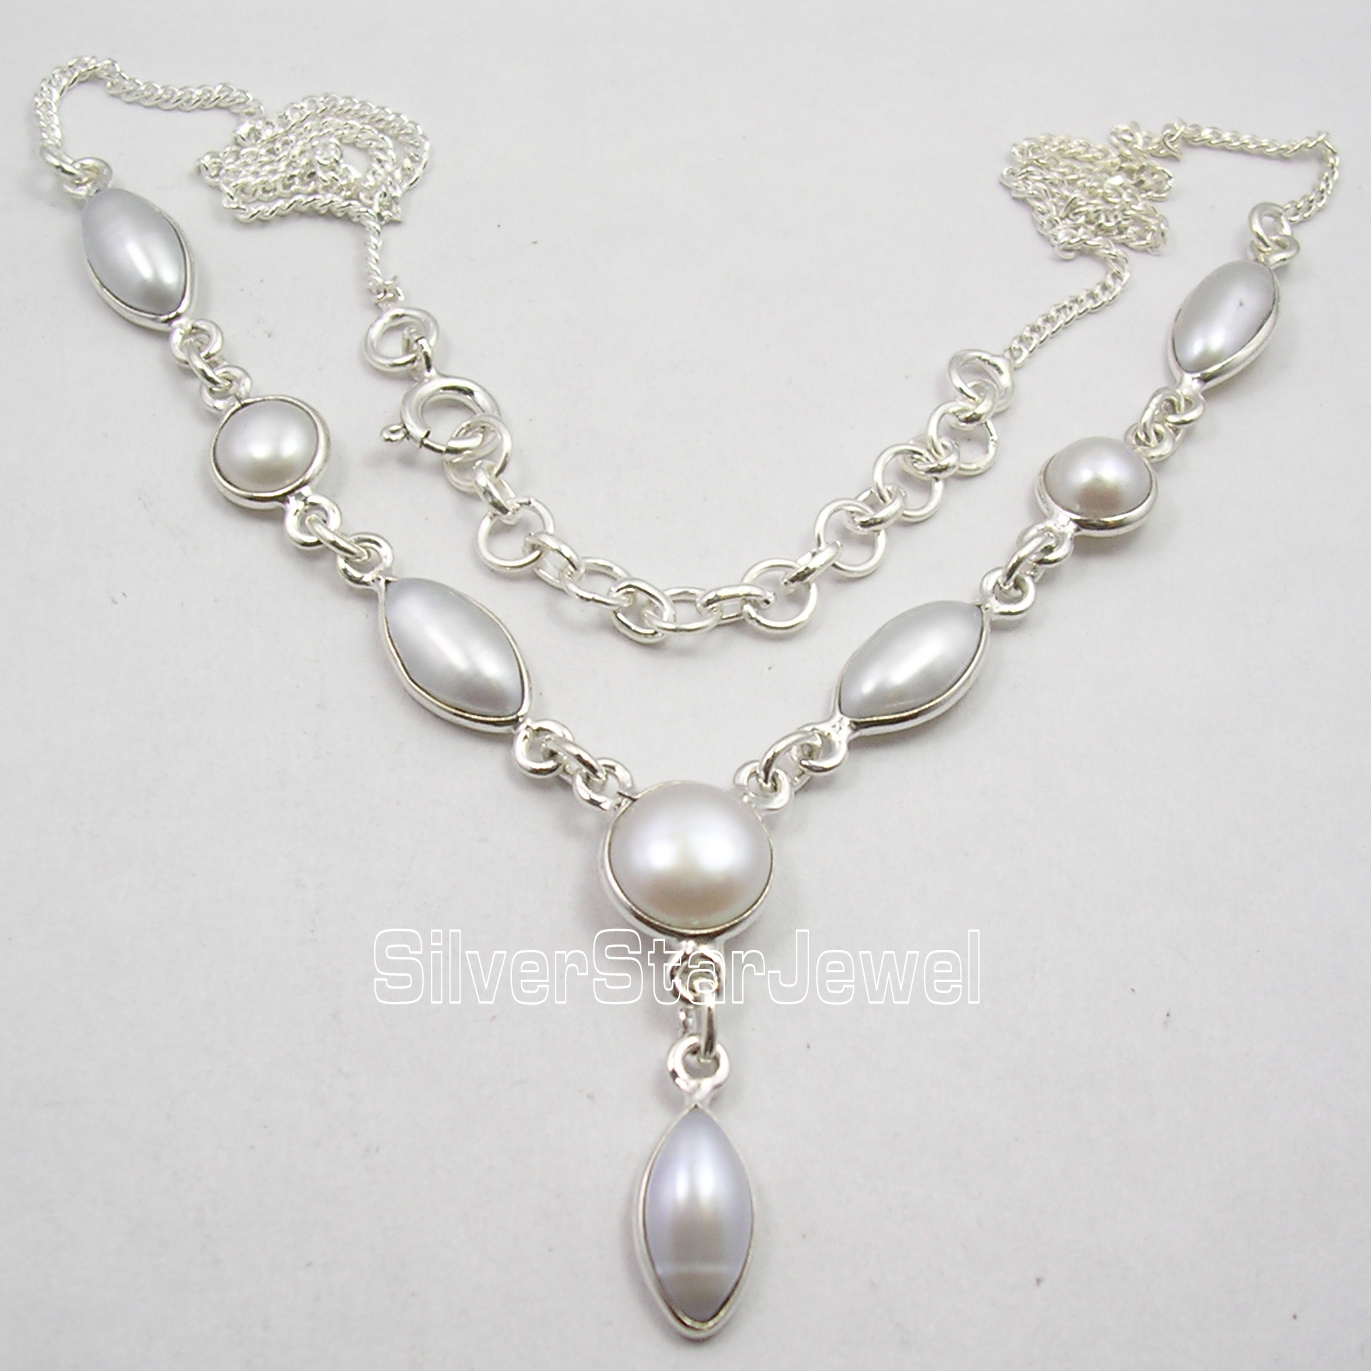 Chanti International Solid Silver WHITE AAA WHITE PEARL PRETTY Necklace 18 1/8 GIFT FOR FRIEND